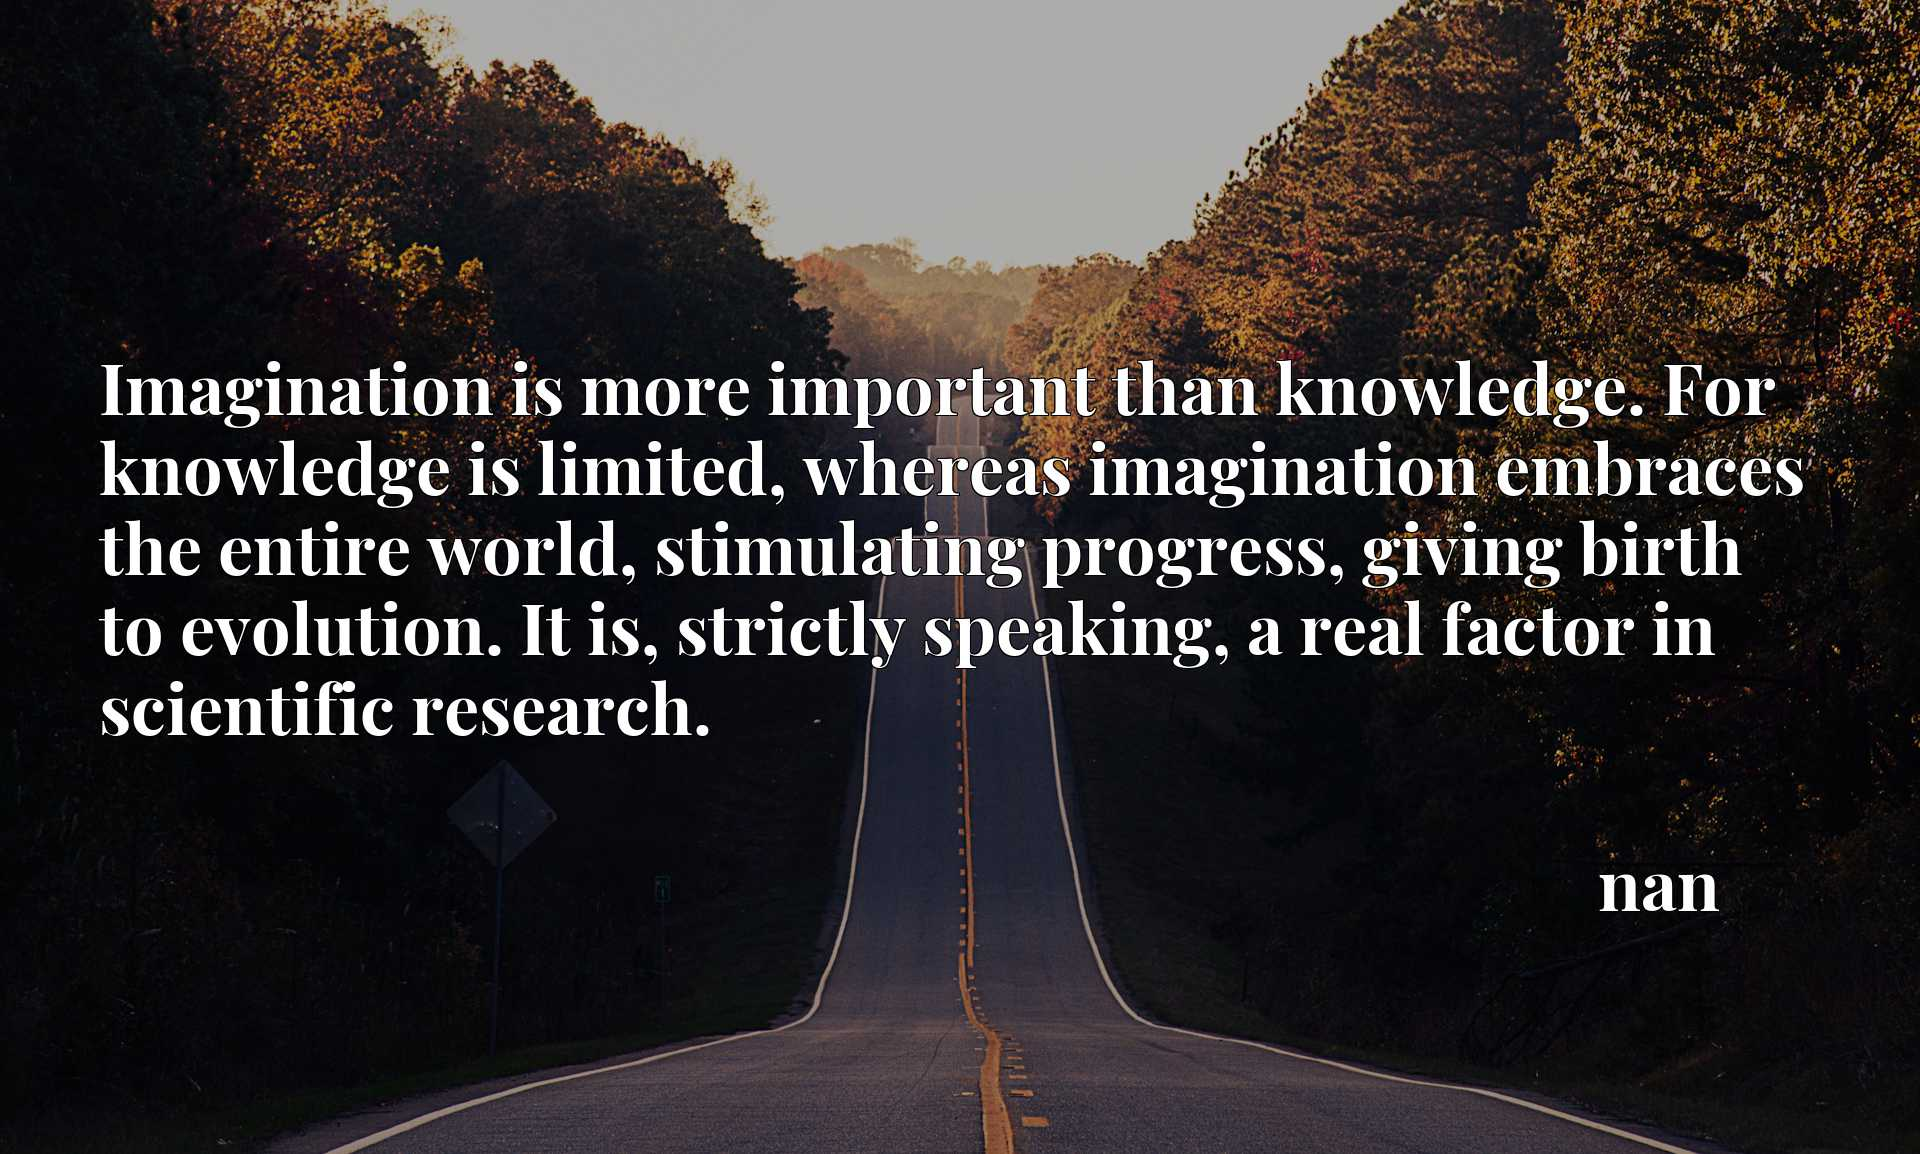 Imagination is more important than knowledge. For knowledge is limited, whereas imagination embraces the entire world, stimulating progress, giving birth to evolution. It is, strictly speaking, a real factor in scientific research.